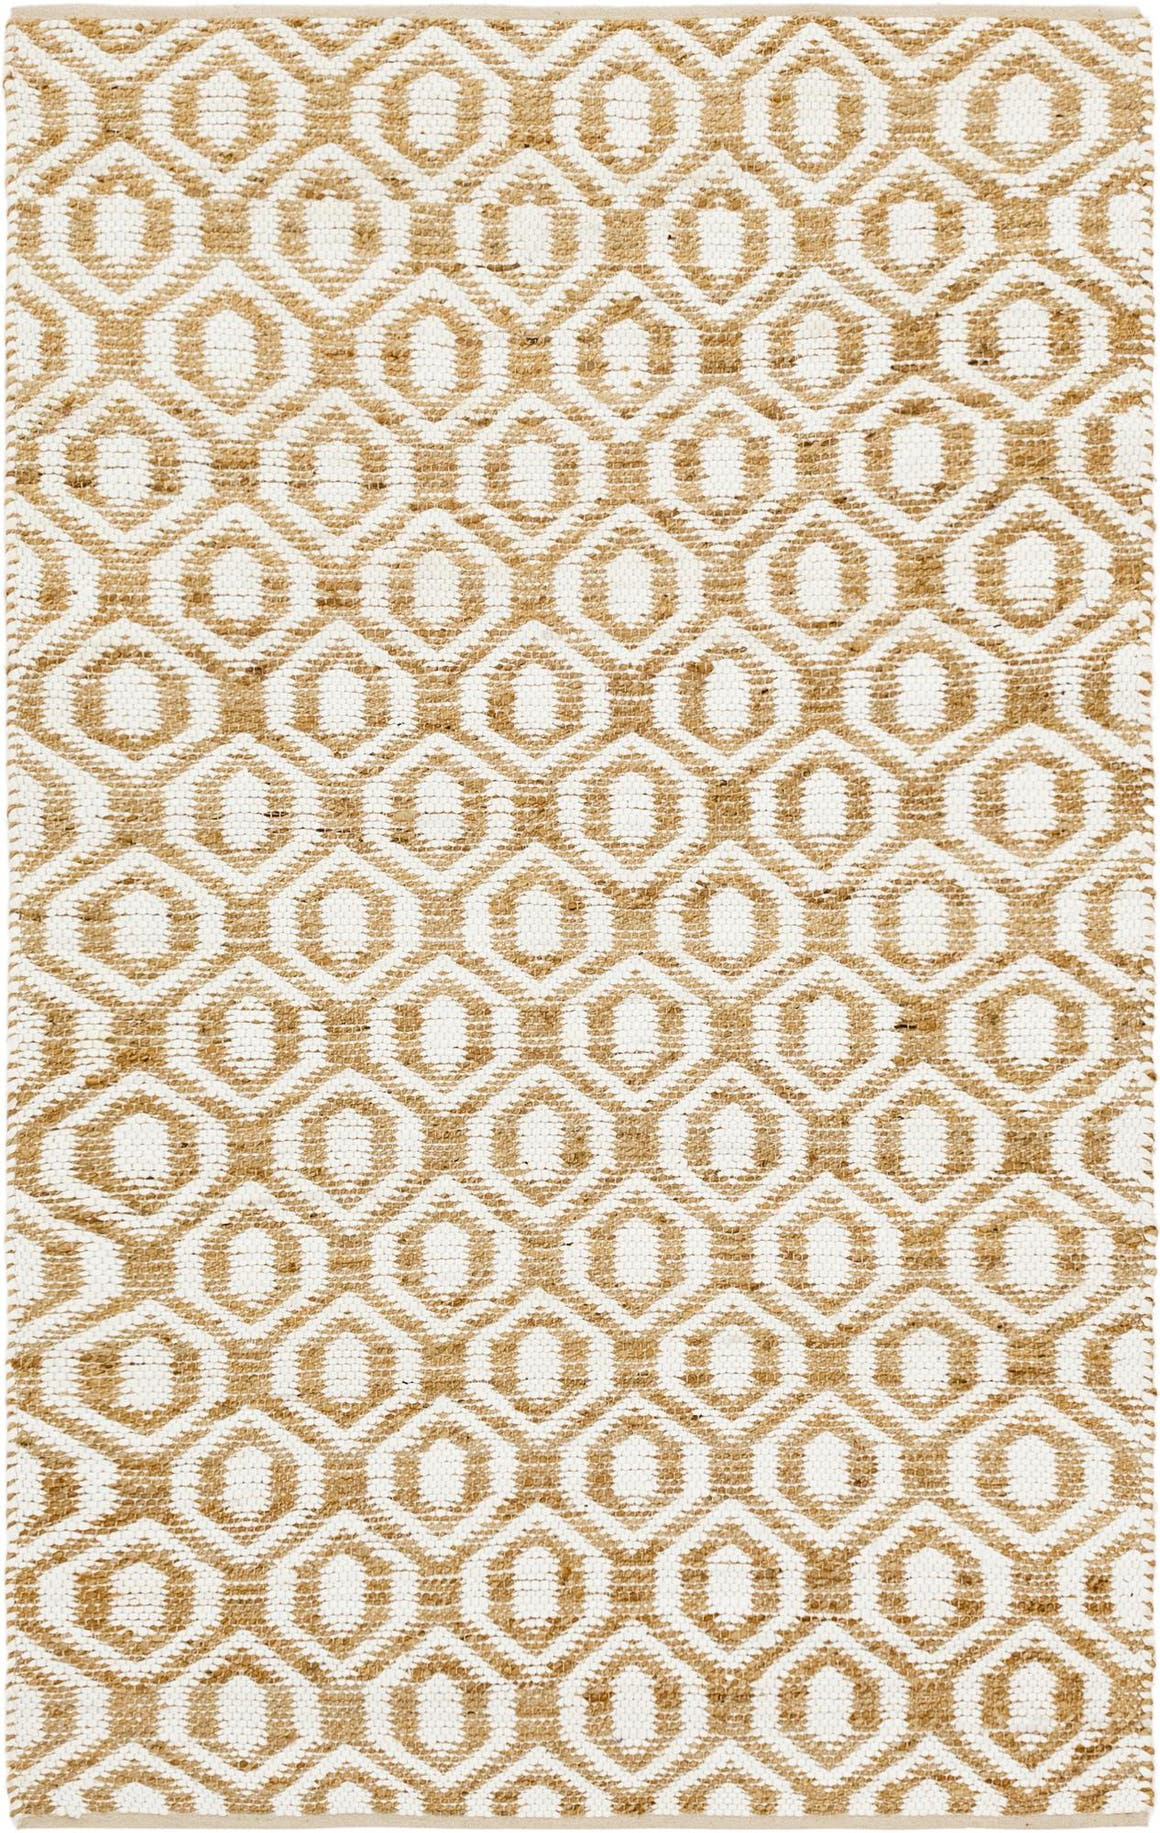 5' 1 x 8' 1 Chindi Cotton Rug main image